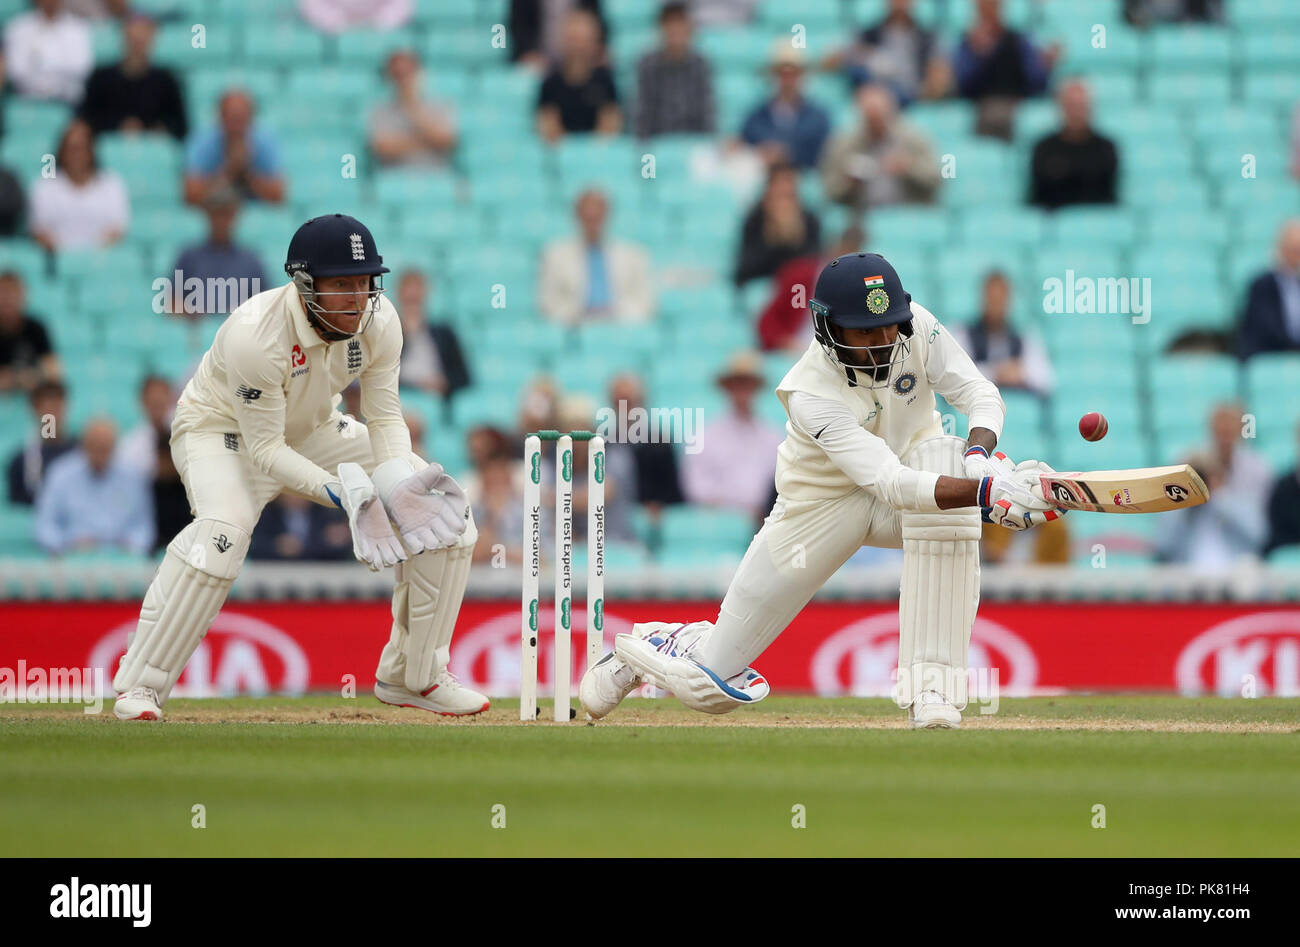 India's KL Rahul during the test match at The Kia Oval, London. Stock Photo